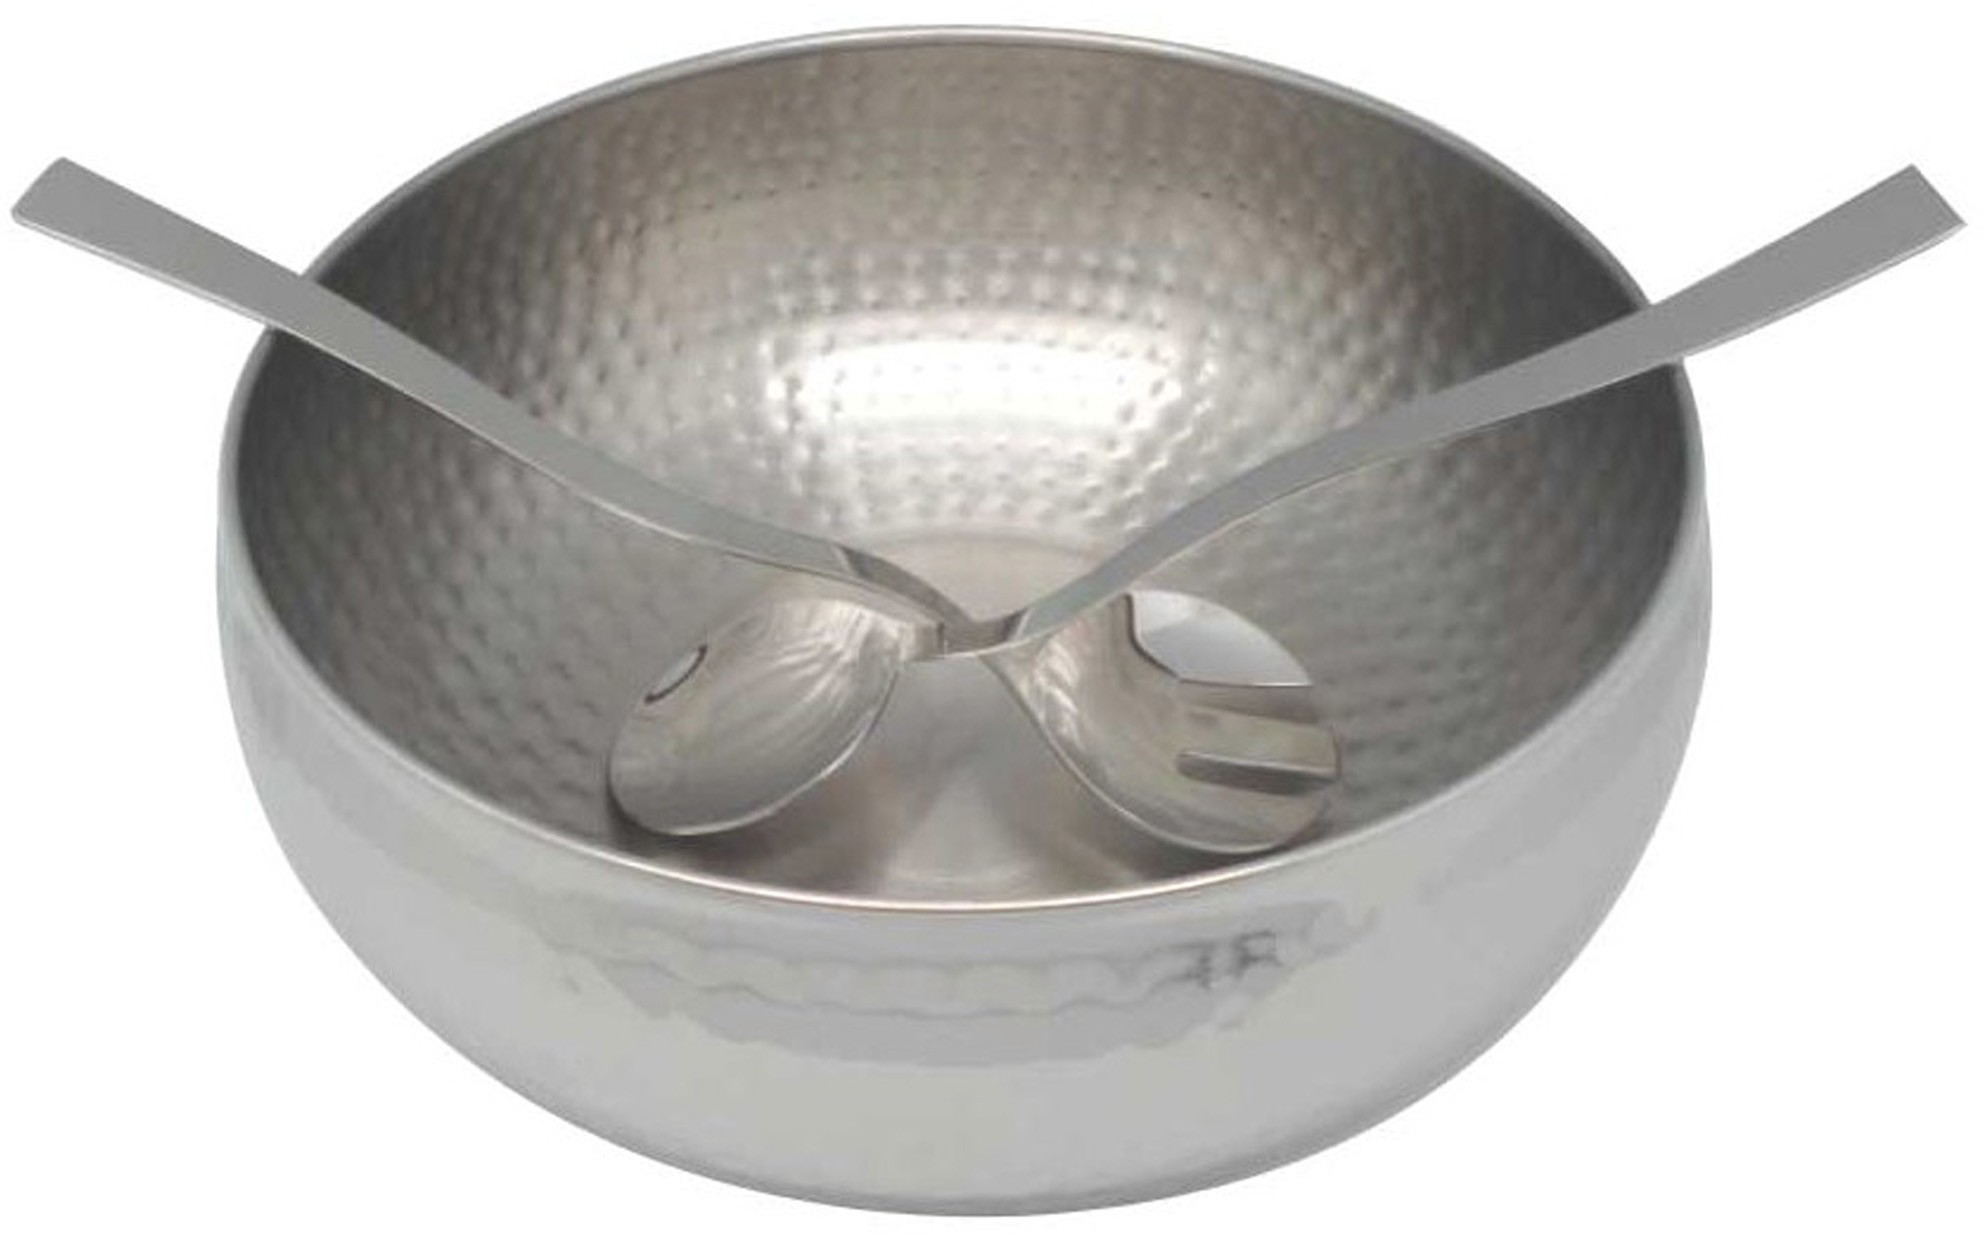 3PC. HAMMERED STAINLESS STEEL SALAD BOWL SET